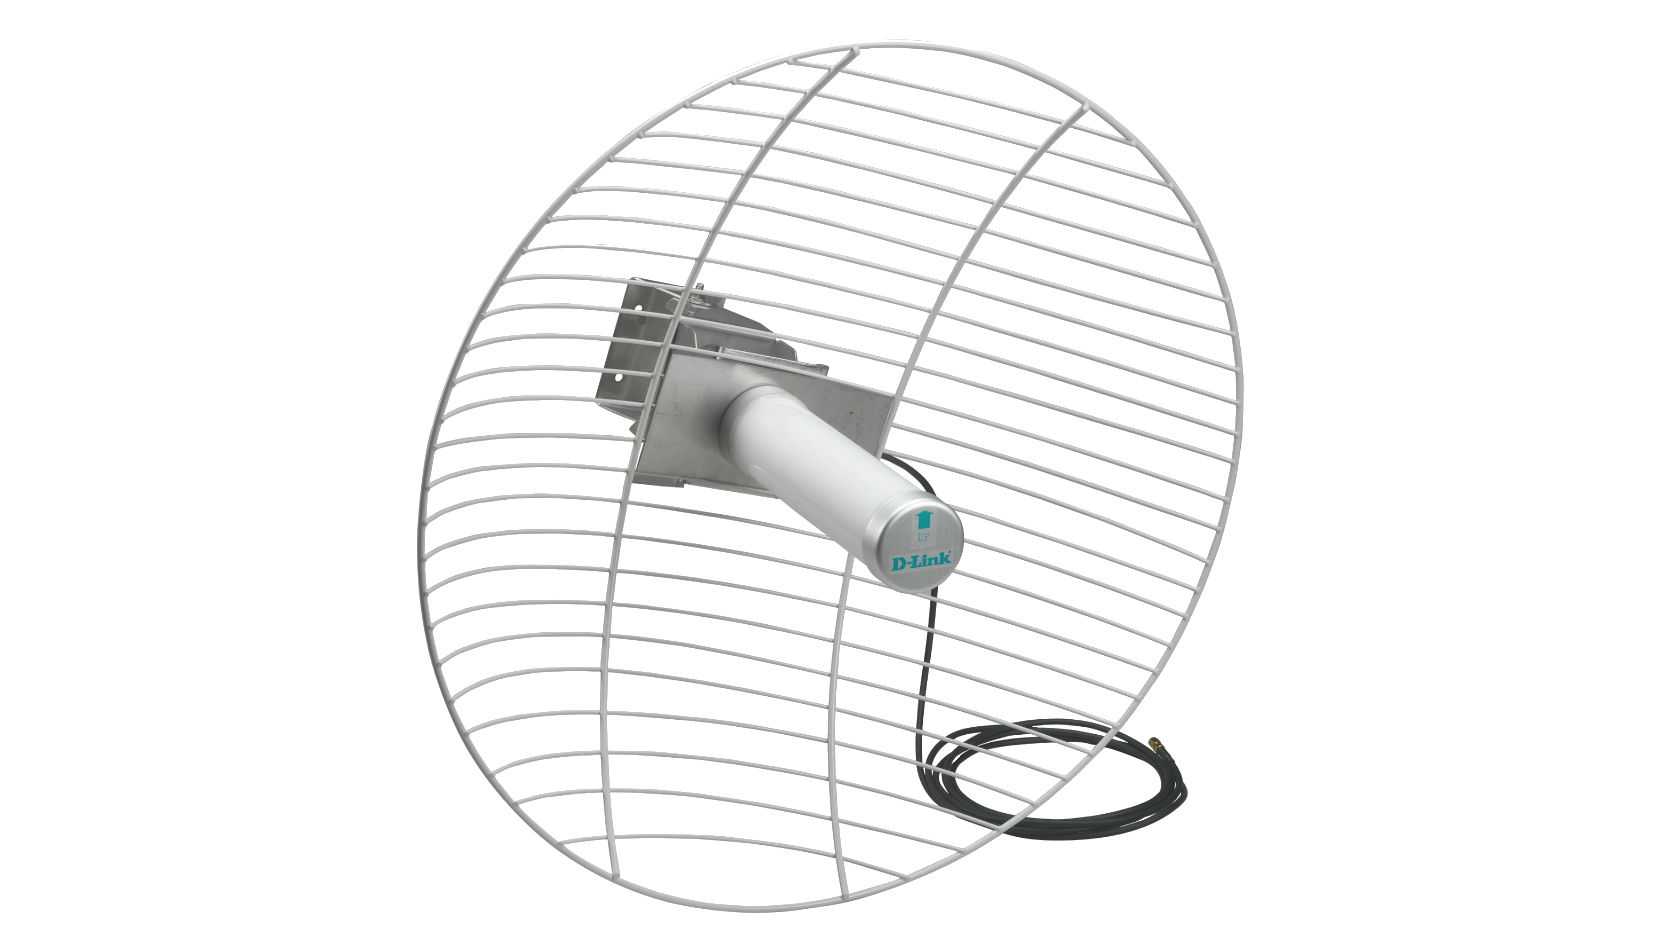 Ant24 Outdoor 21dbi Directional Grid 11g Antenna